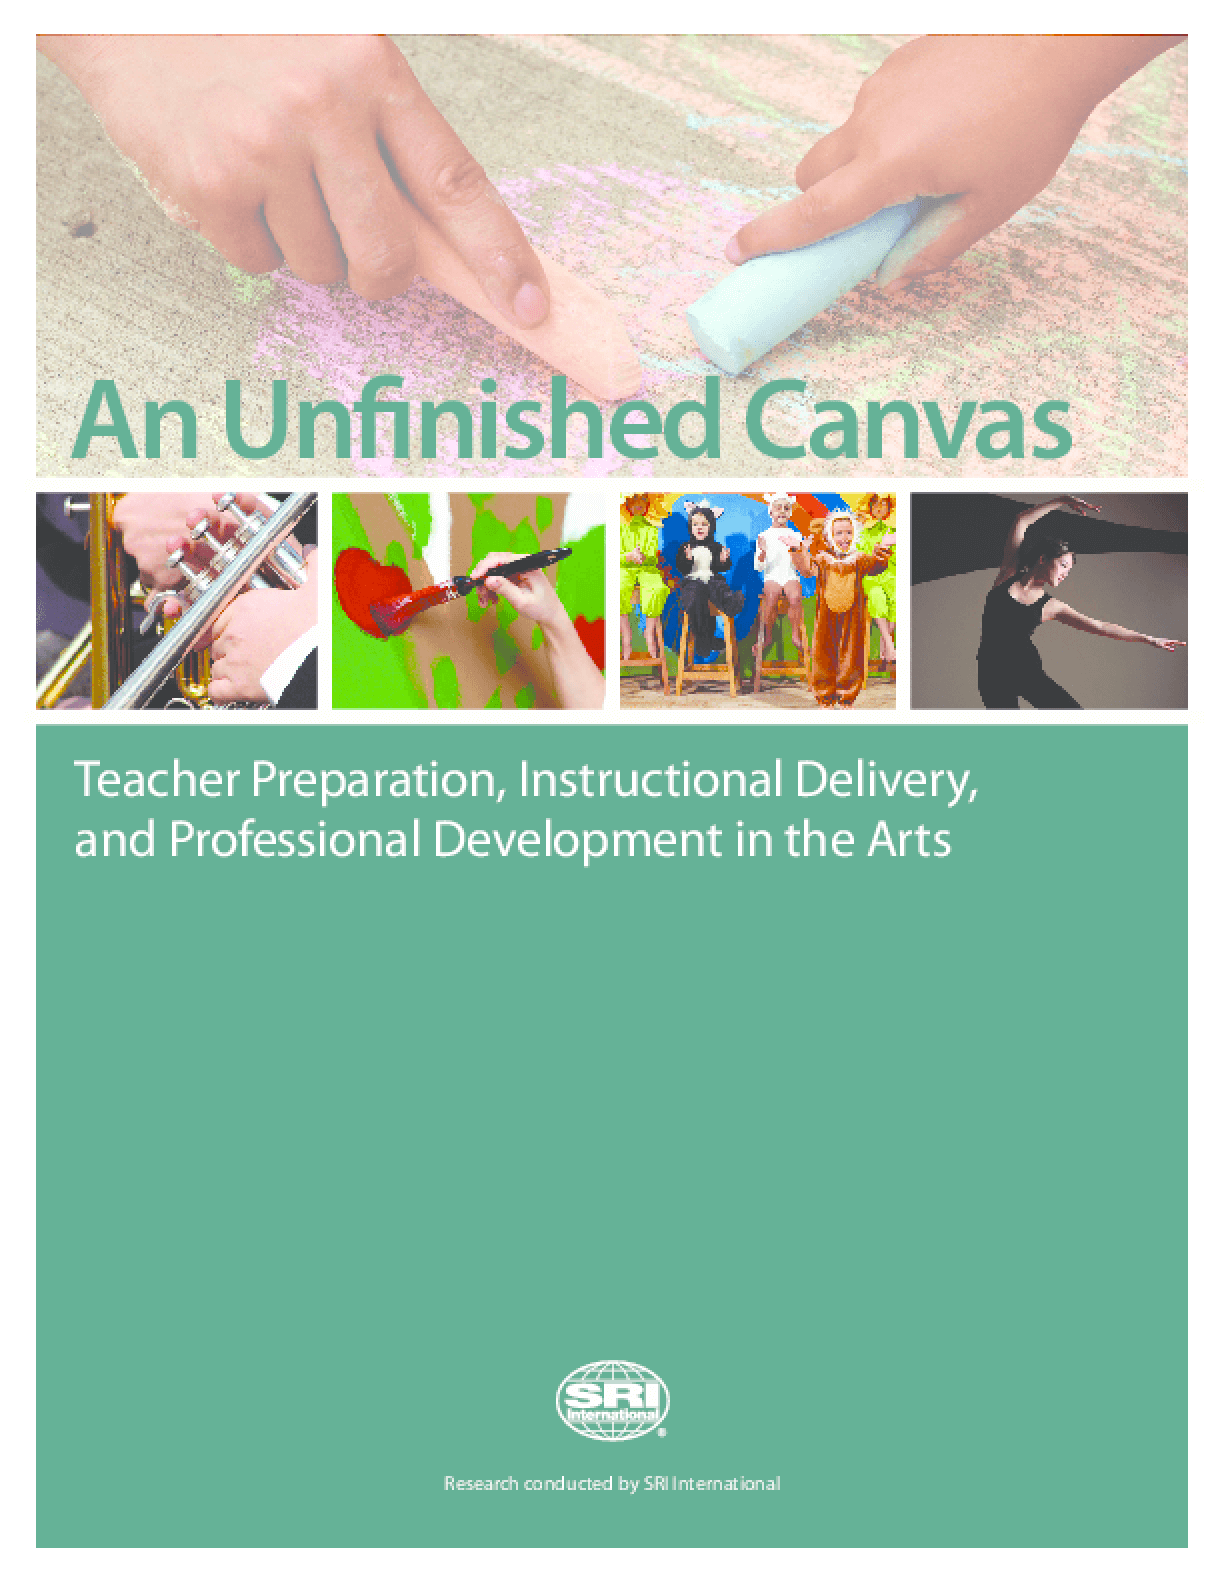 An Unfinished Canvas: Teacher Preparation, Instructional Delivery, and Professional Development in the Arts